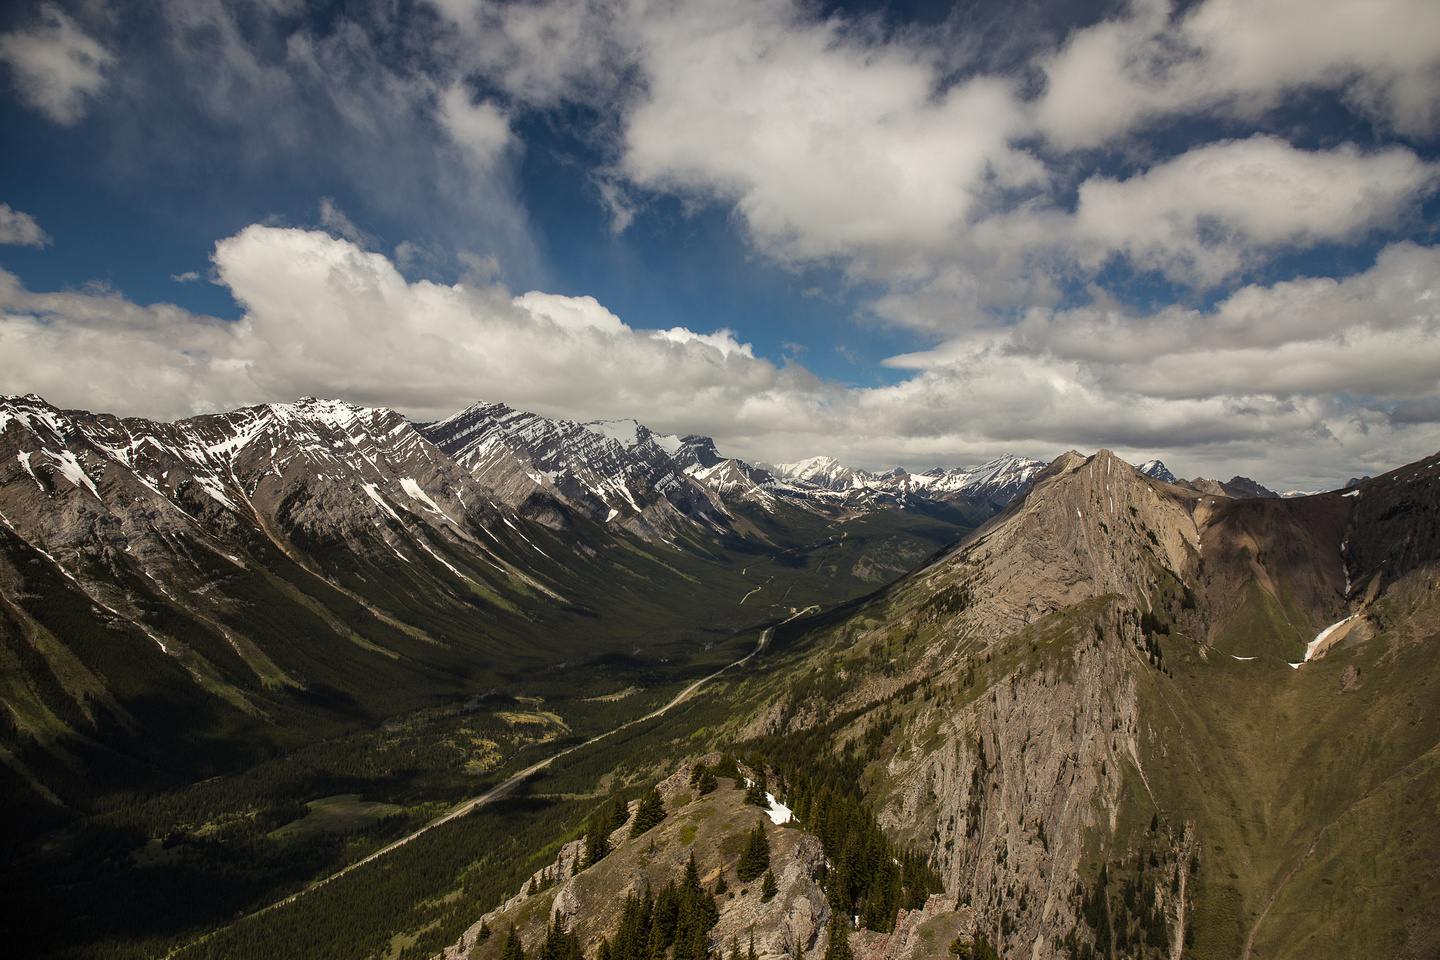 Packenham Junior at right foreground in this view down the Kananaskis Valley.